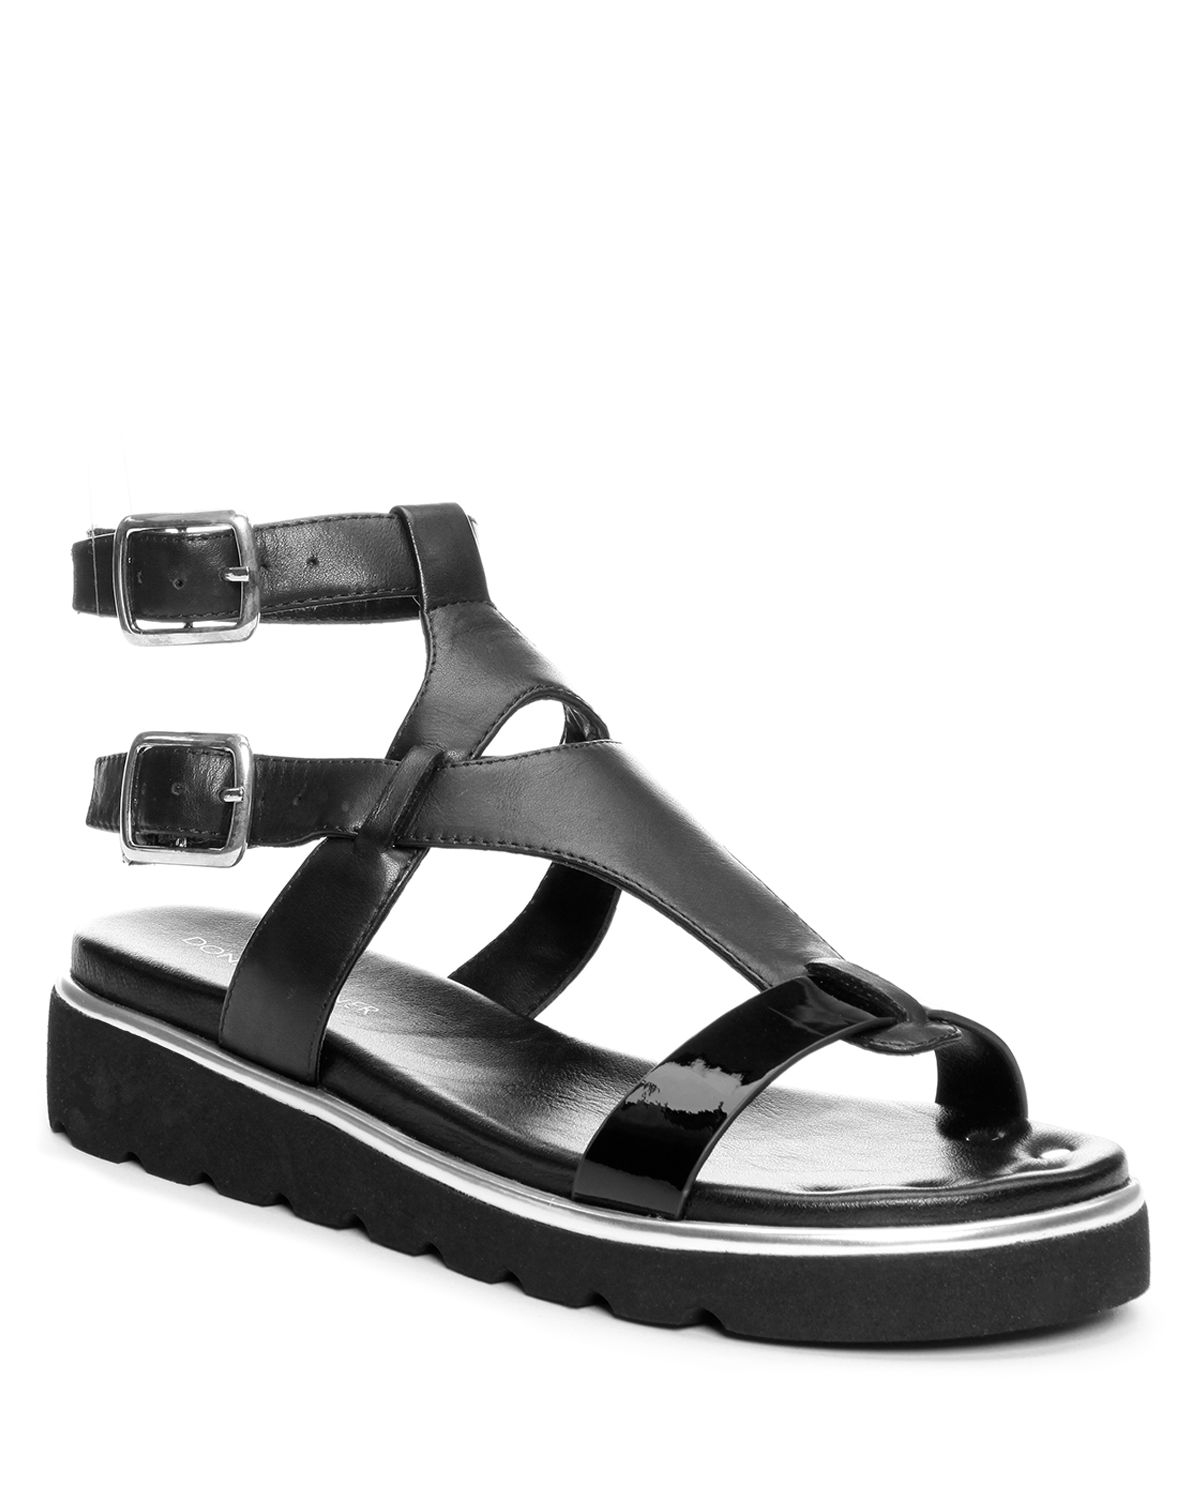 771e078b5d94 Gallery. Previously sold at  Bloomingdale s · Women s Gladiator Sandals ...